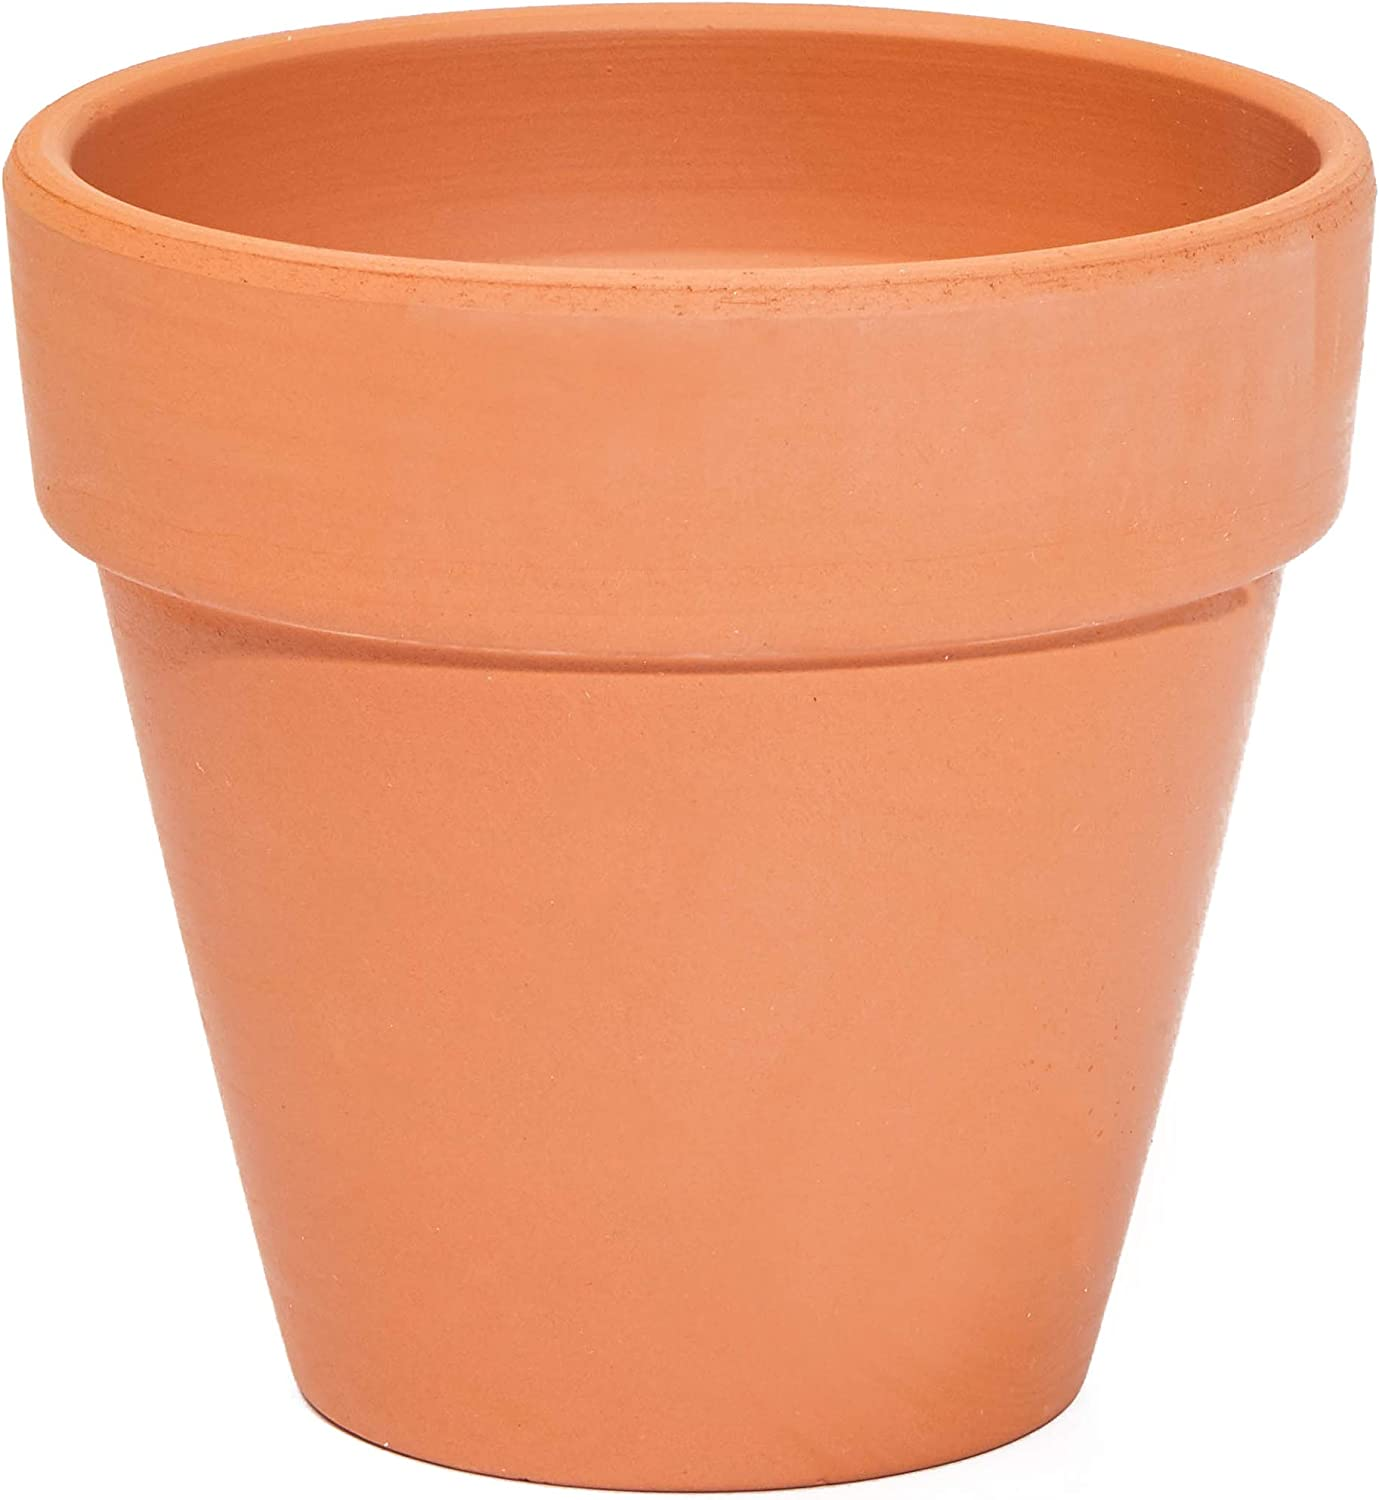 Terra Cotta Pots with Saucers 4 in, 6 Pack